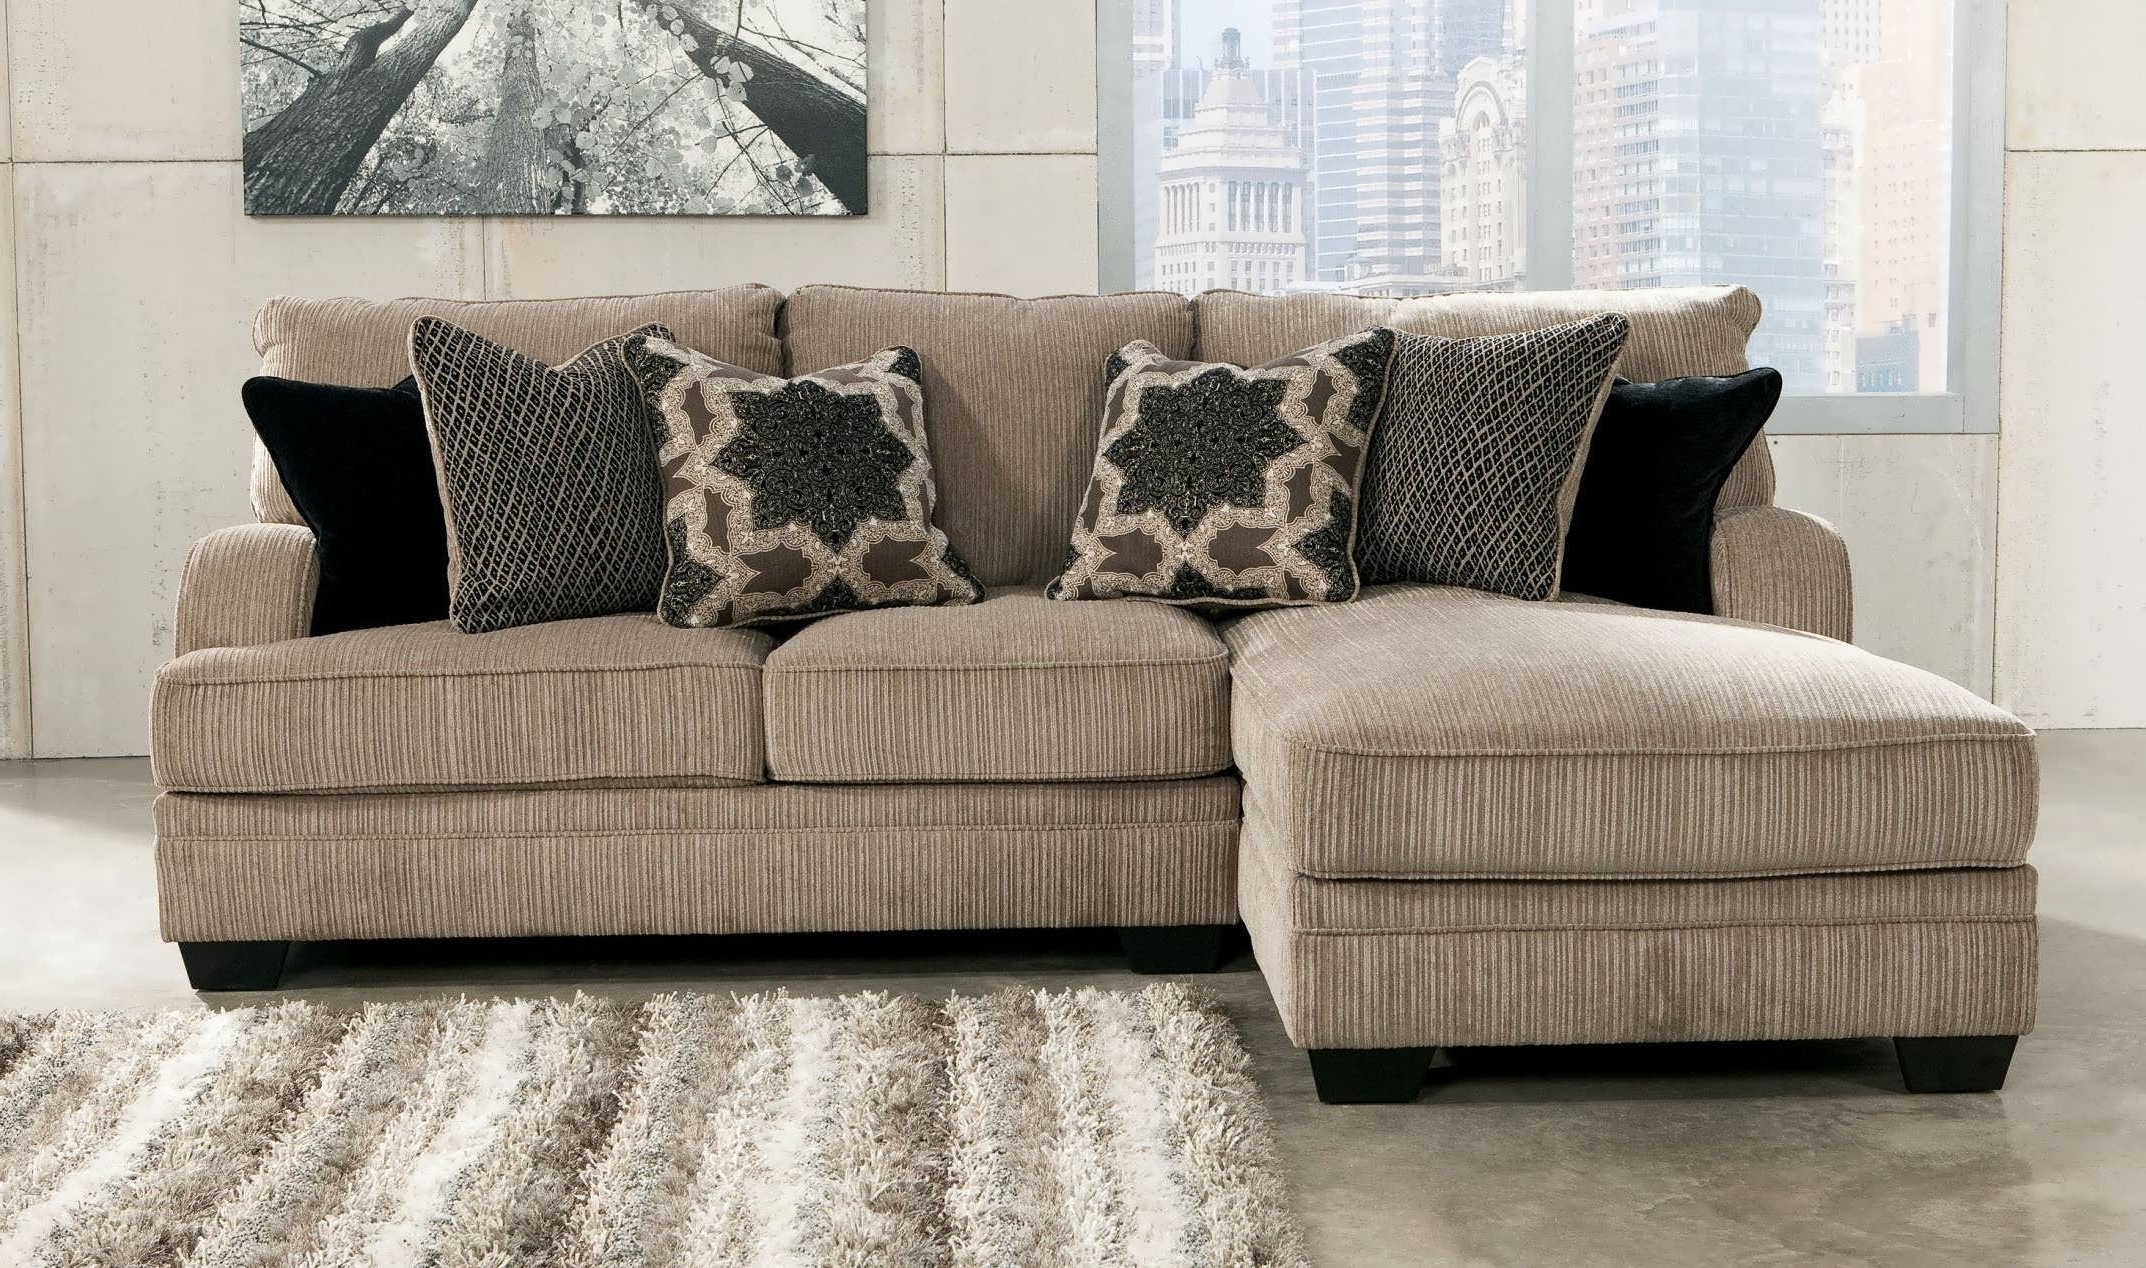 Sofa : Sleeper Sectional Sofa For Small Spaces 2 Piece Sectional Inside Most Recently Released Sectional Sofas For Small Rooms (View 16 of 20)